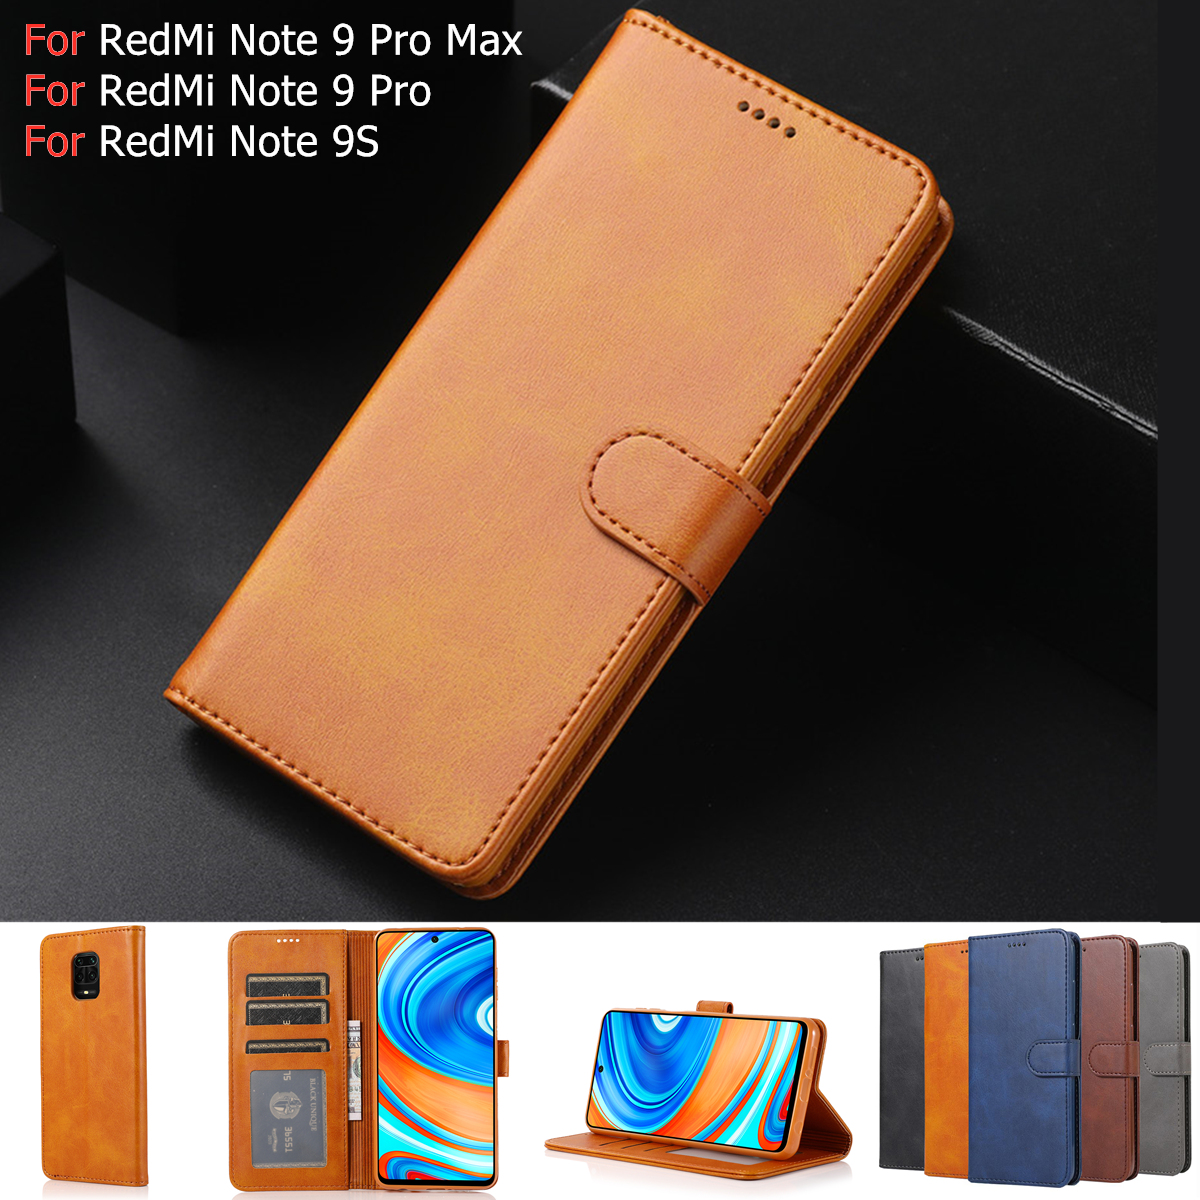 Case For Xiaomi Redmi Note 9S Pro Cover Case Luxury Magnetic Leather Wallet Phone Bag On Xiomi Redmi Note 9 8 Pro Note9 Pro Max